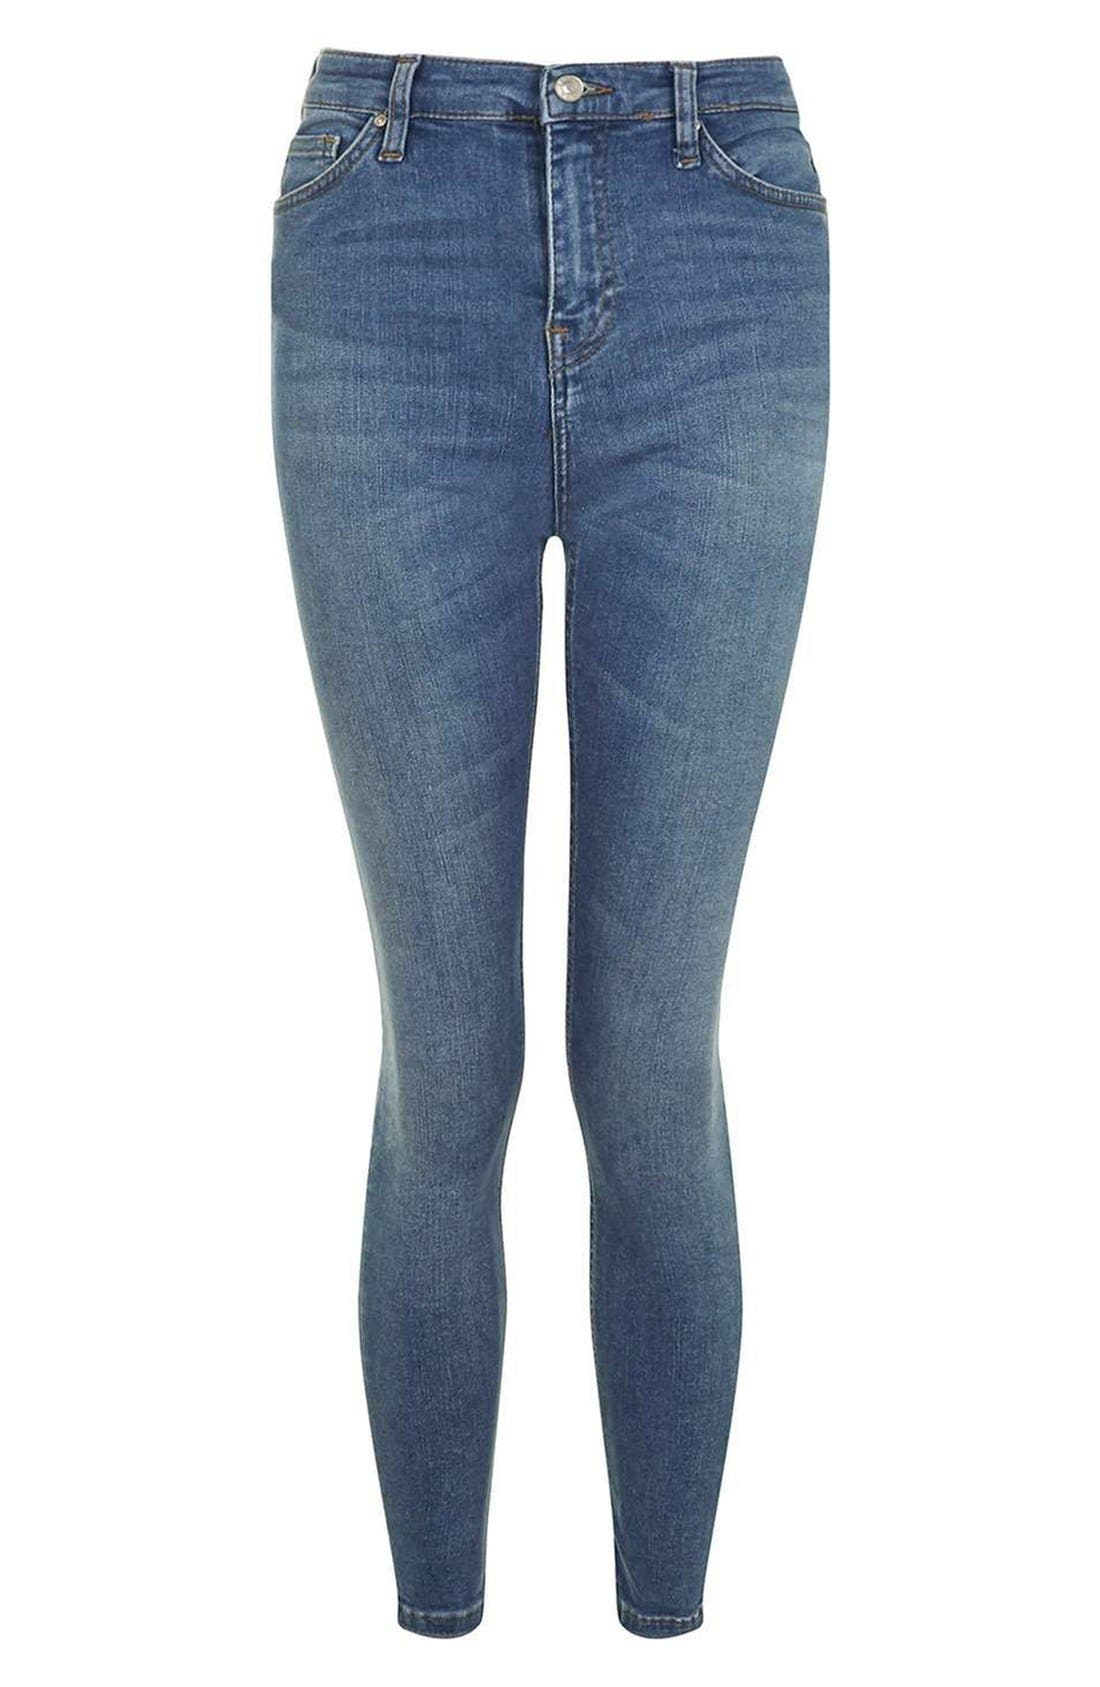 Jamie High Waist Crop Skinny Jeans,                             Alternate thumbnail 6, color,                             400